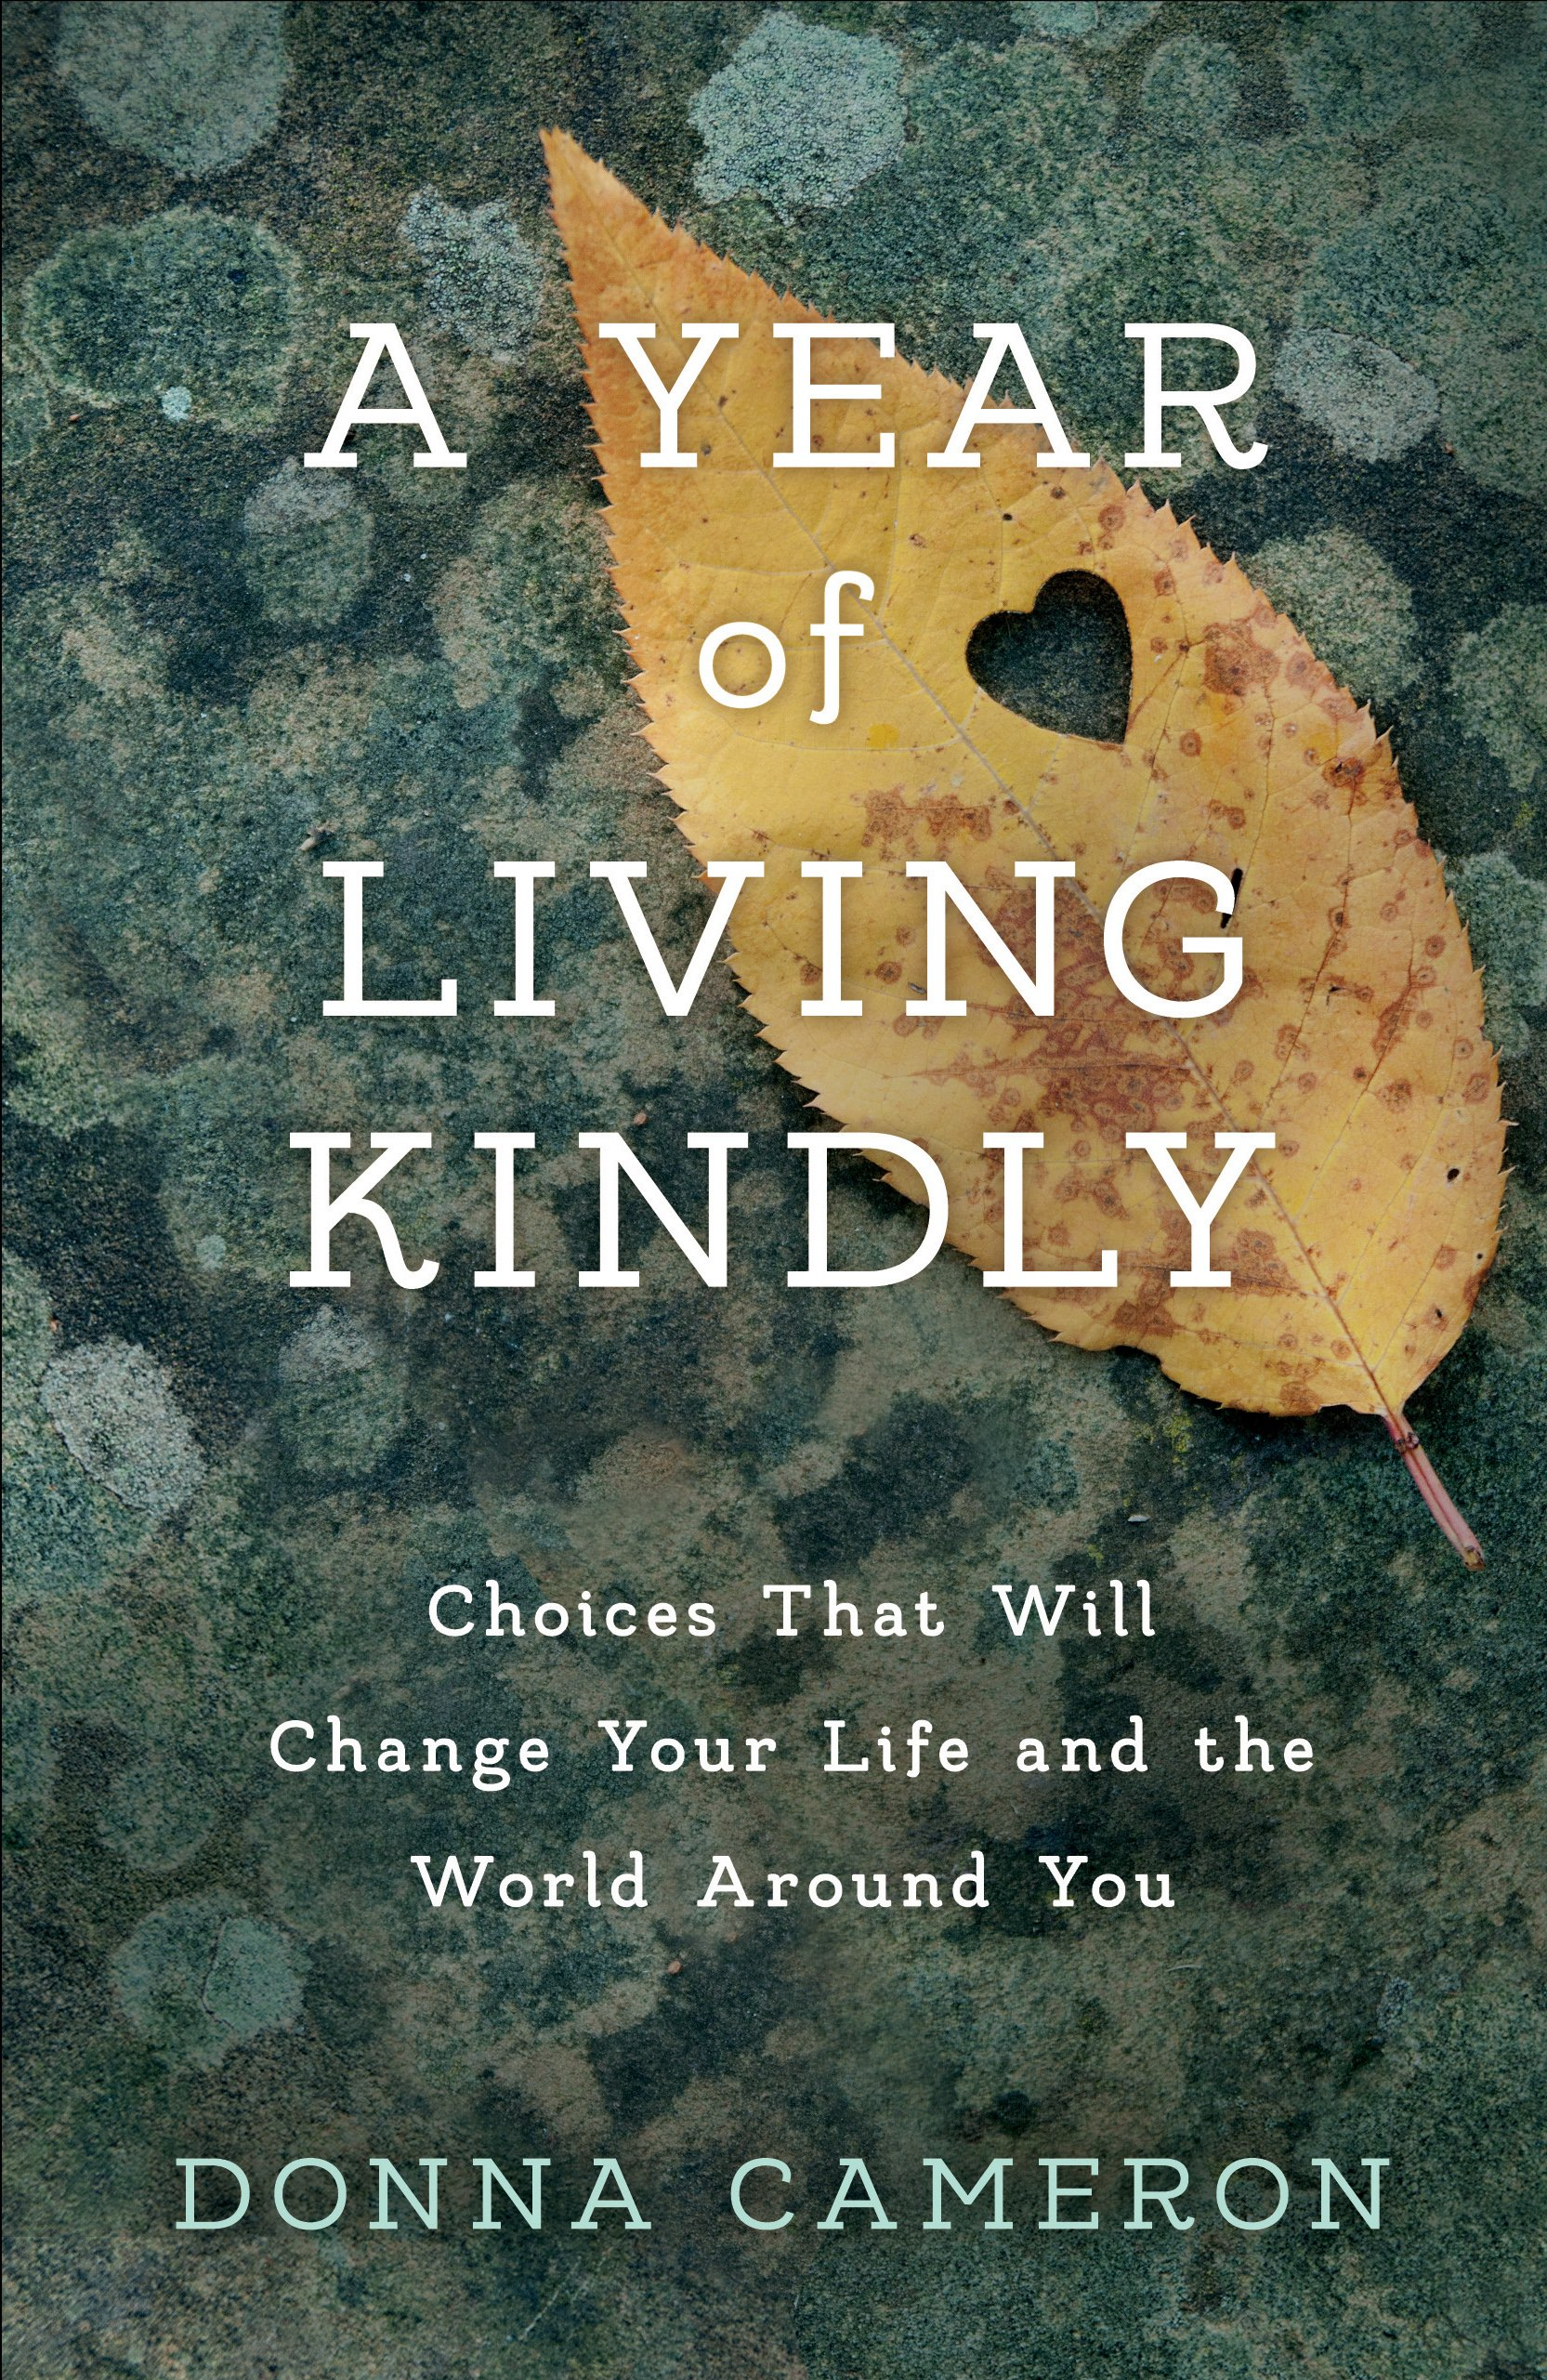 year of living kindly cover image - FINAL.jpg